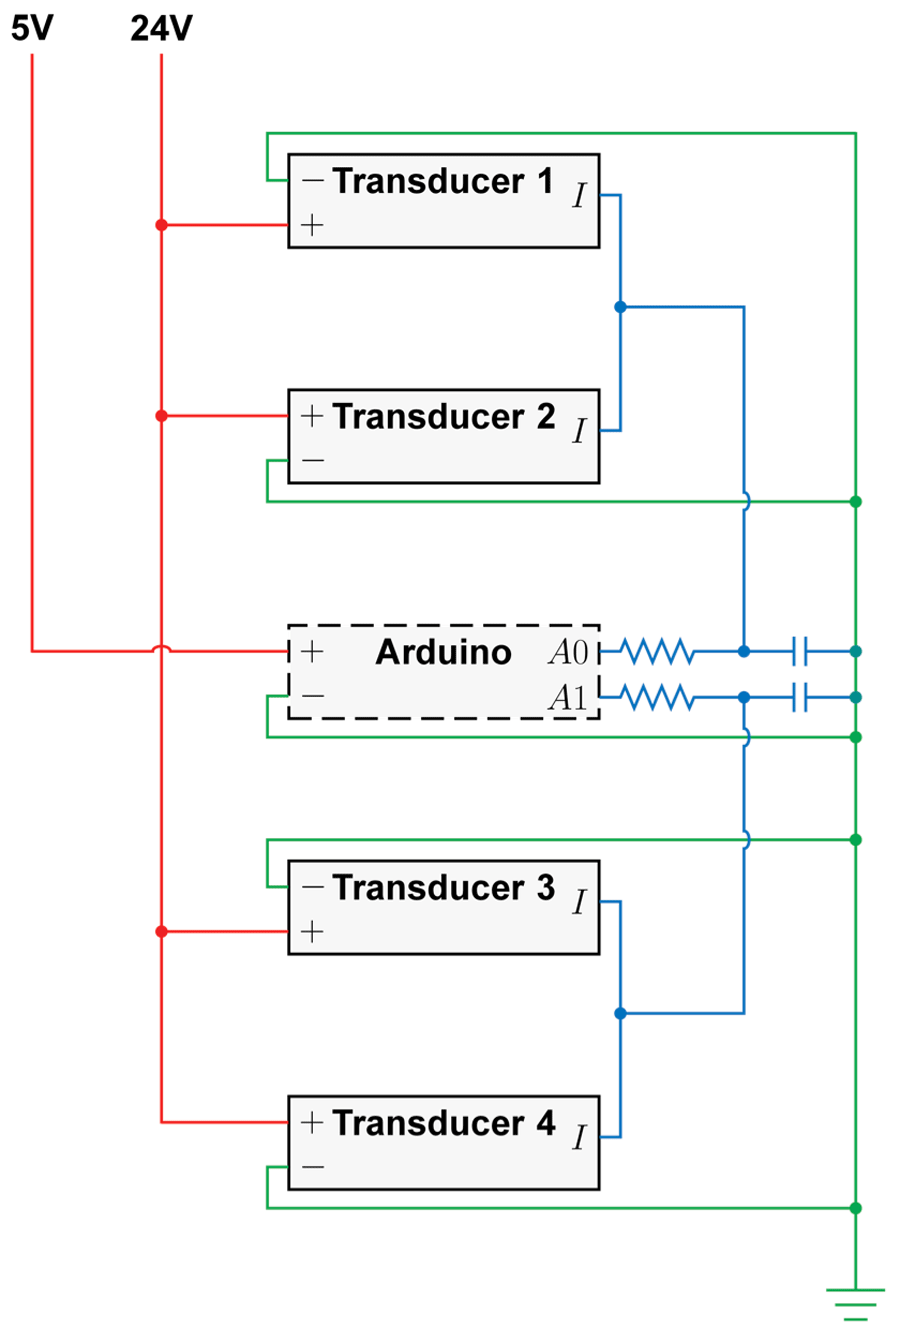 development and evaluation of a programmable alternating pressure the circuit diagram shows 5 v and 24 v power supplies four transducers an